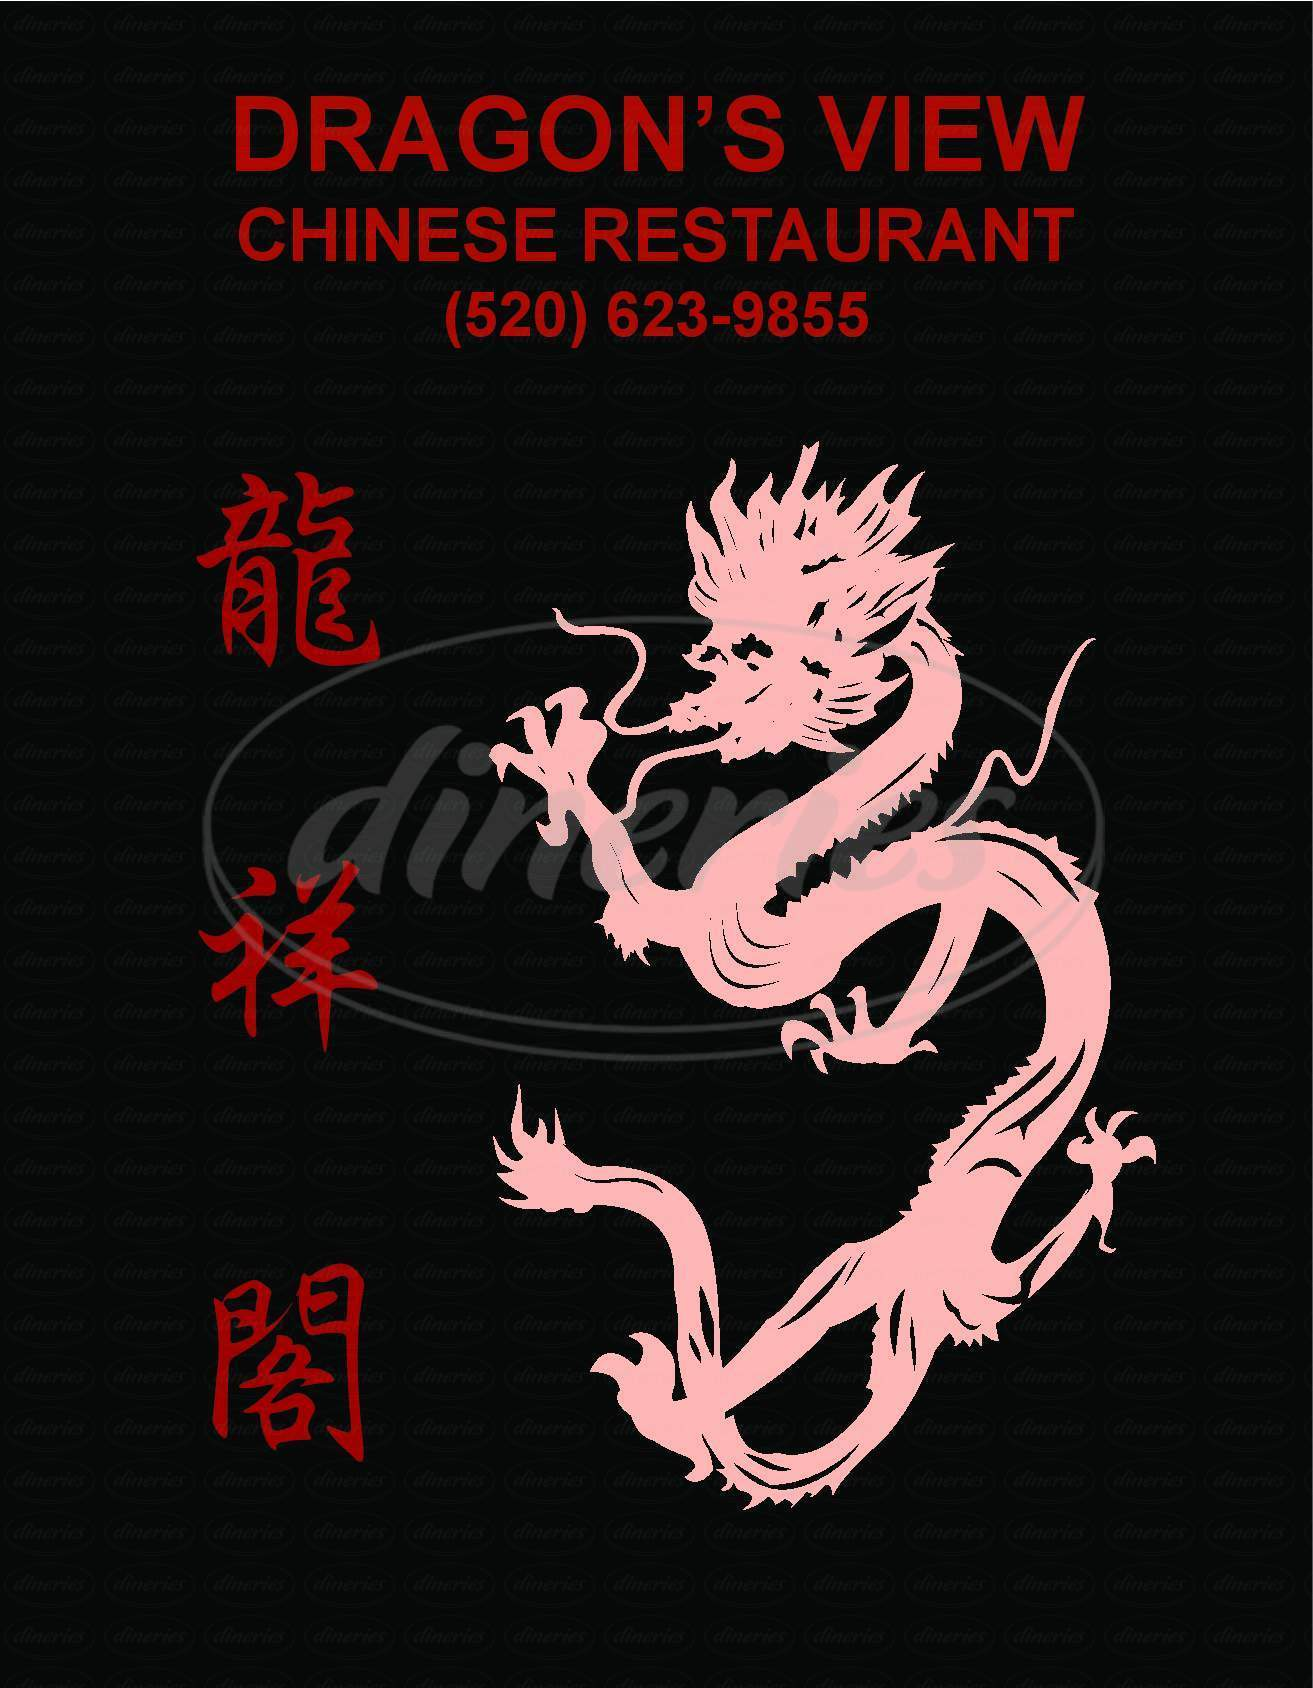 menu for Dragon's View